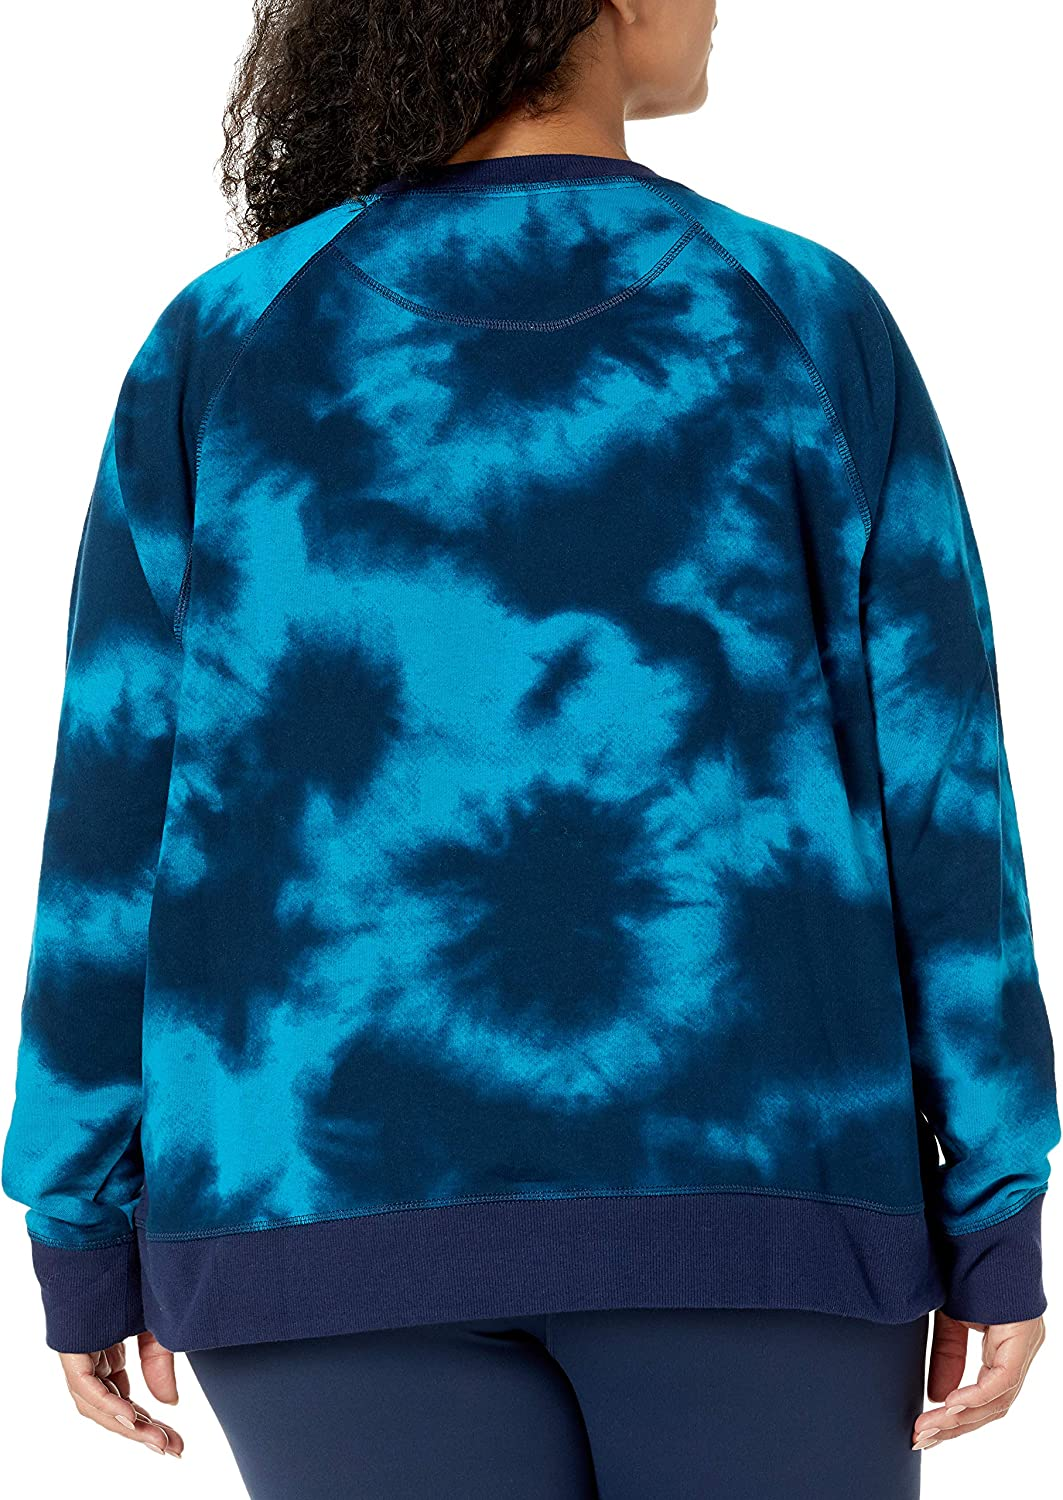 Champion Damen Campus Sweatshirt Cloud Burst Rockin Teal